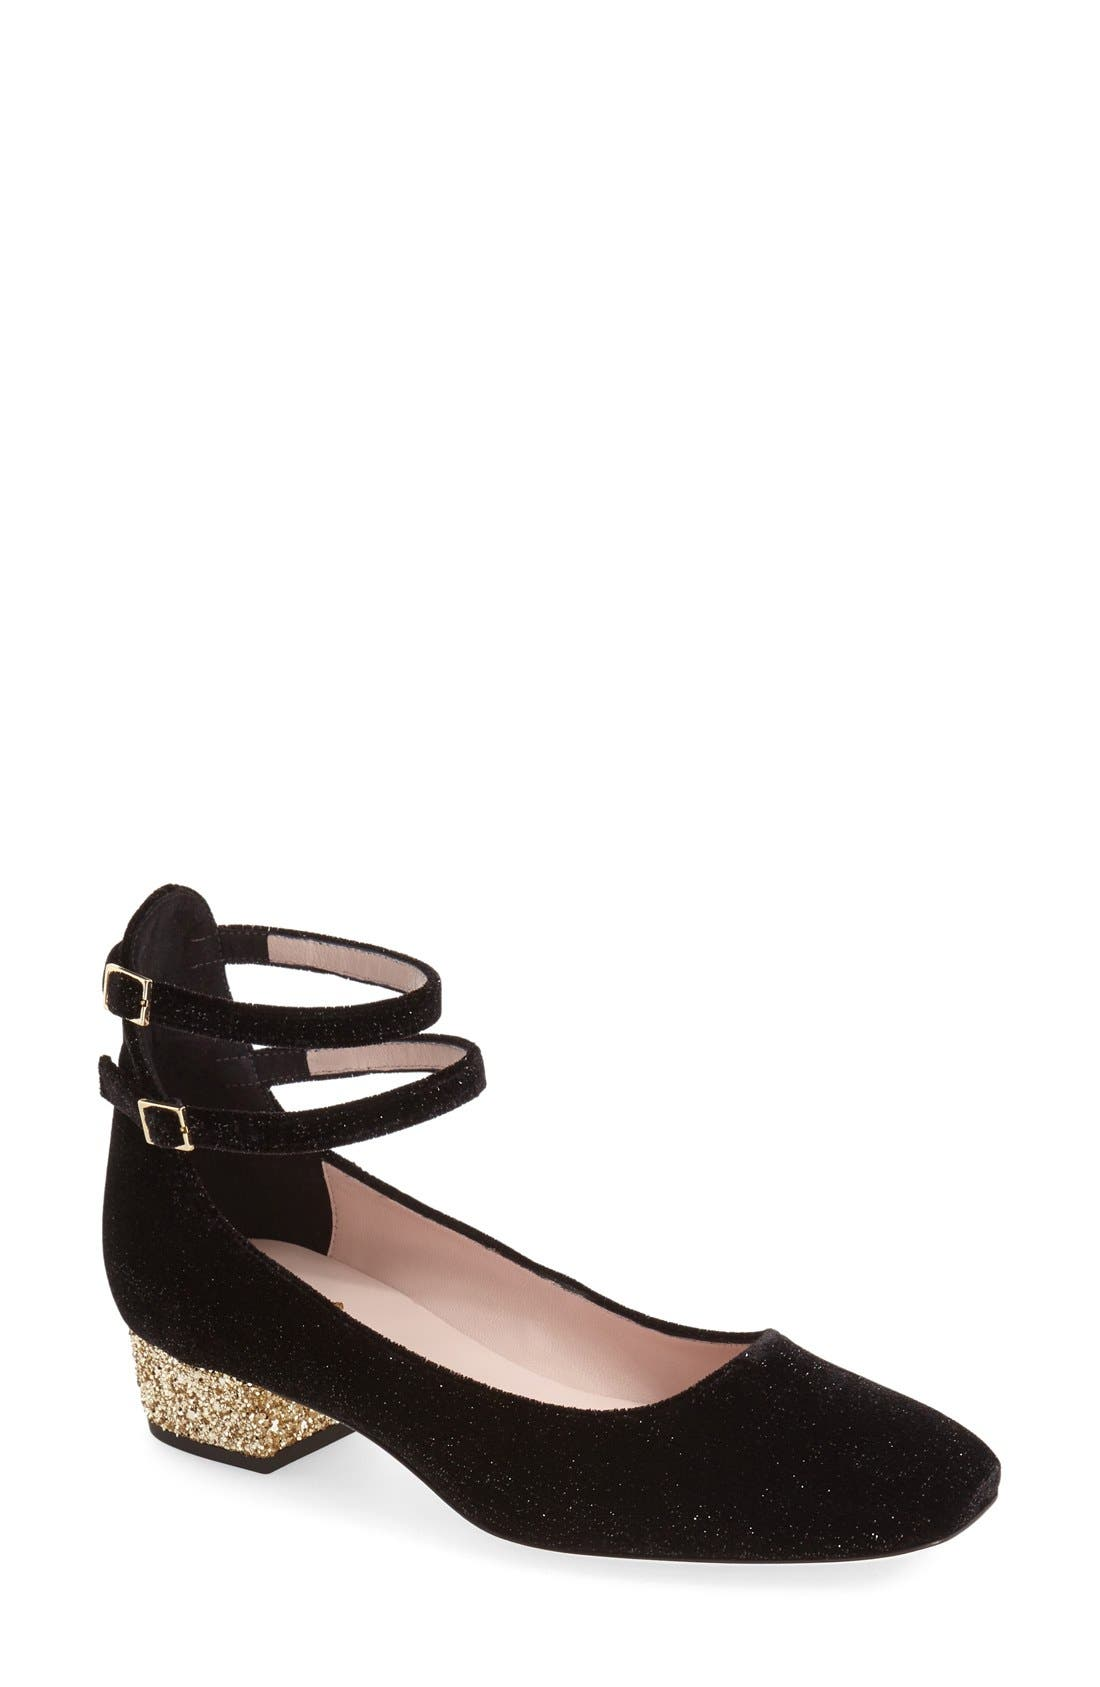 Alternate Image 1 Selected - kate spade new york 'marcellina' ankle strap pump (Women)